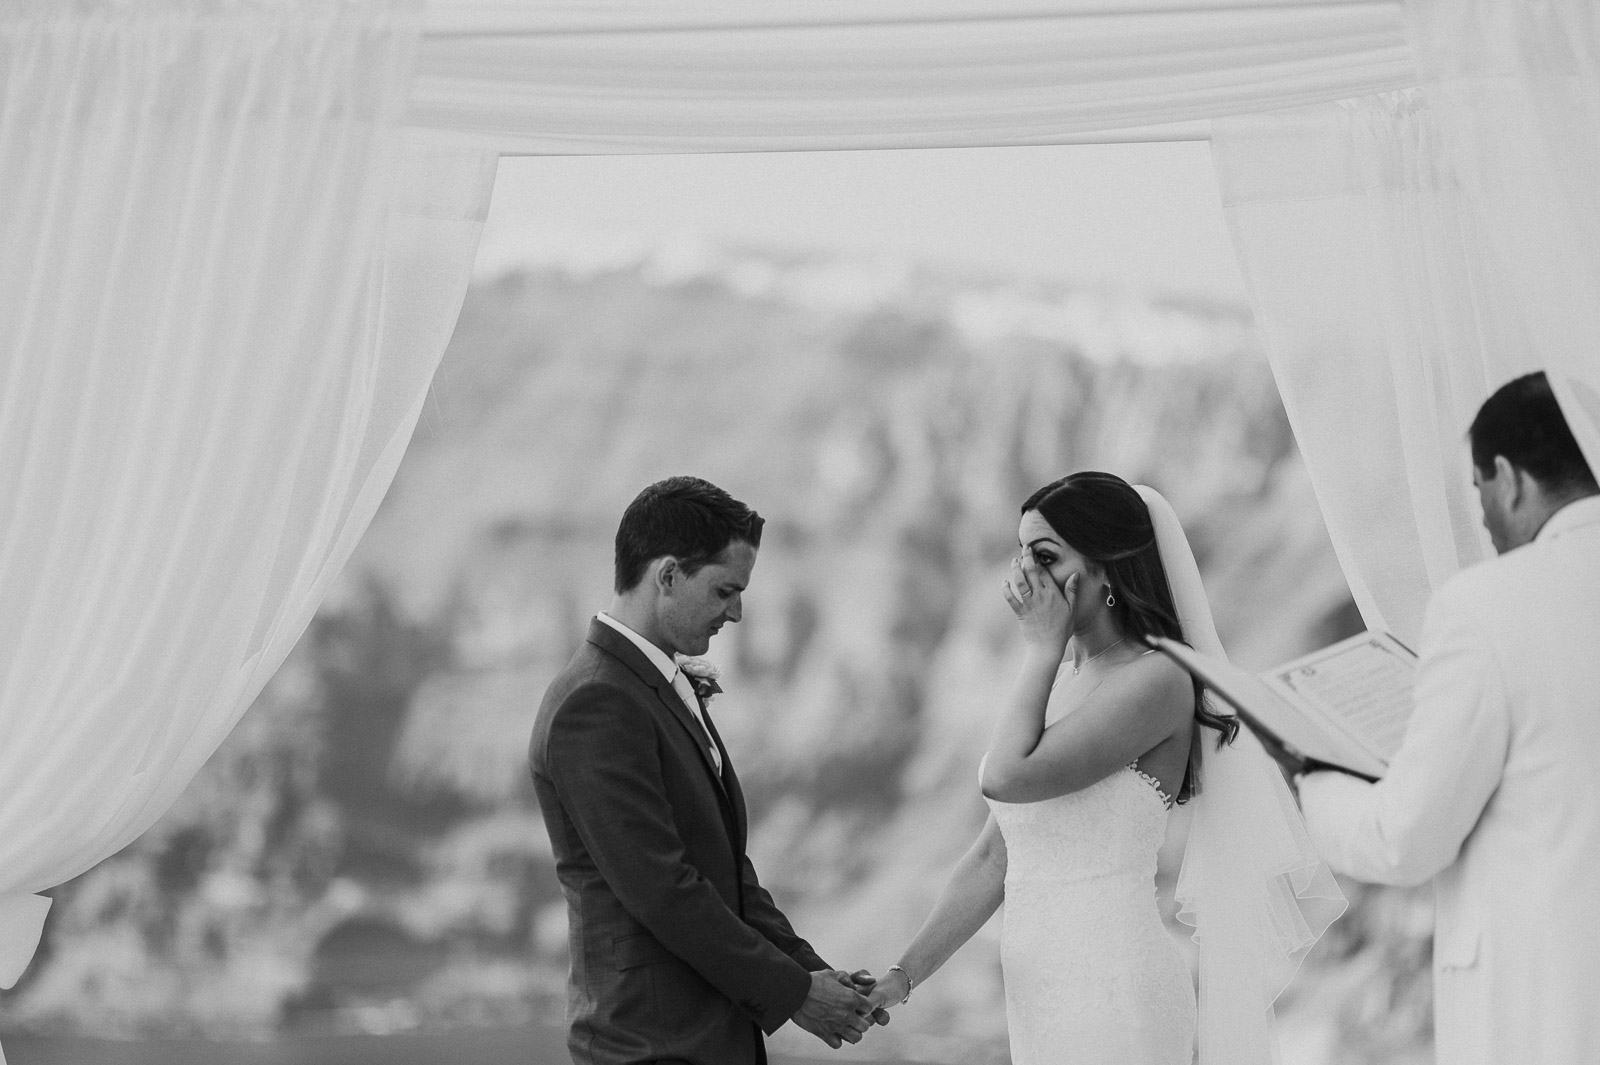 Santorini-Wedding-Photographer-Greece-Destination-Weddings-Mait-Juriado-M&J-Studios-062